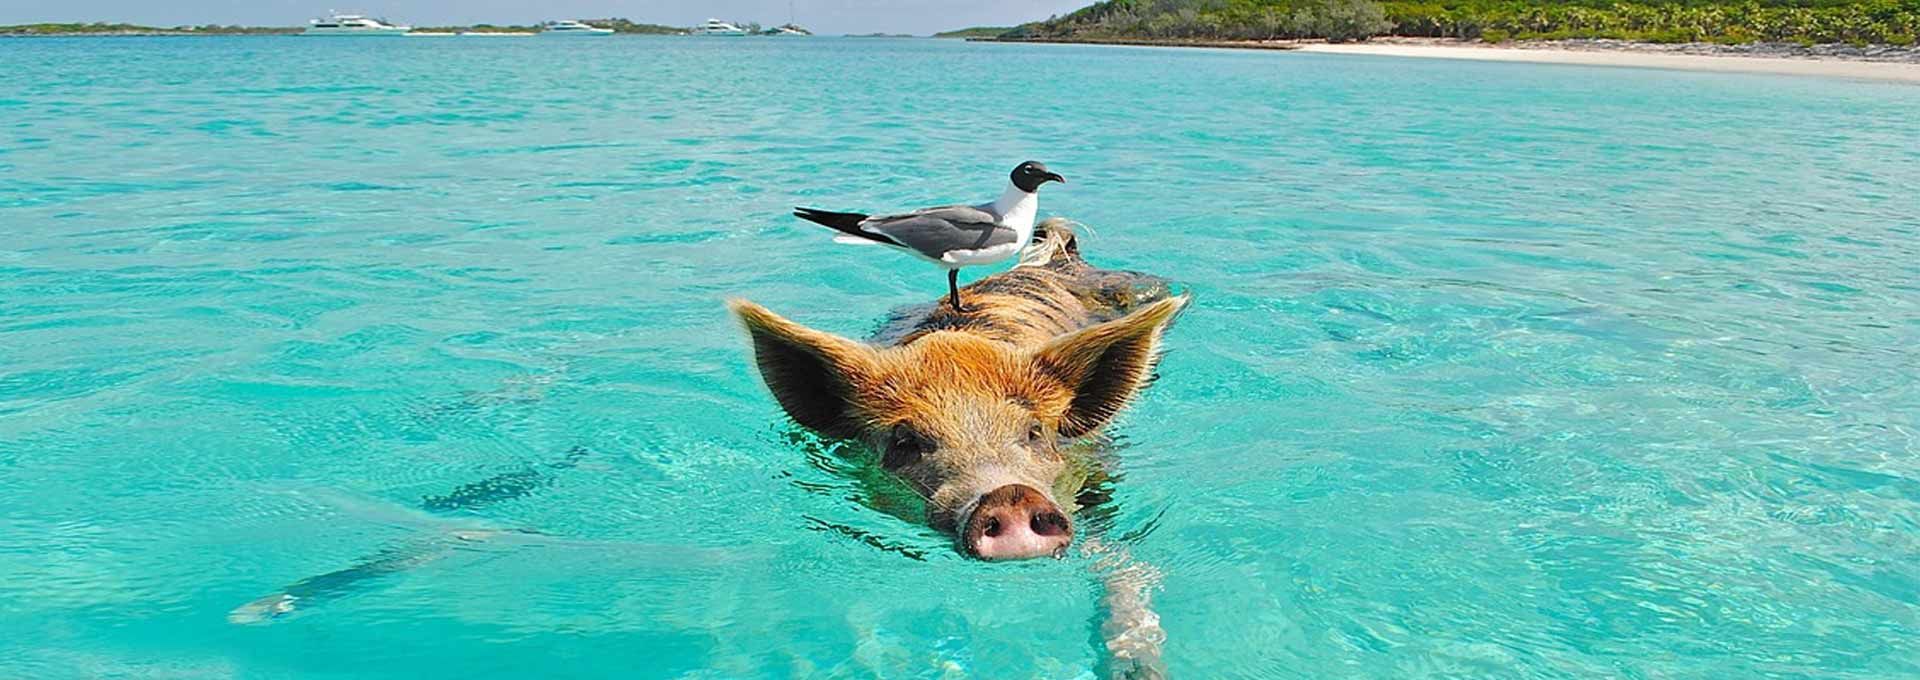 Exuma Full Day Water Tour With Swimming Pigs, Iguana, and Nurse Sharks